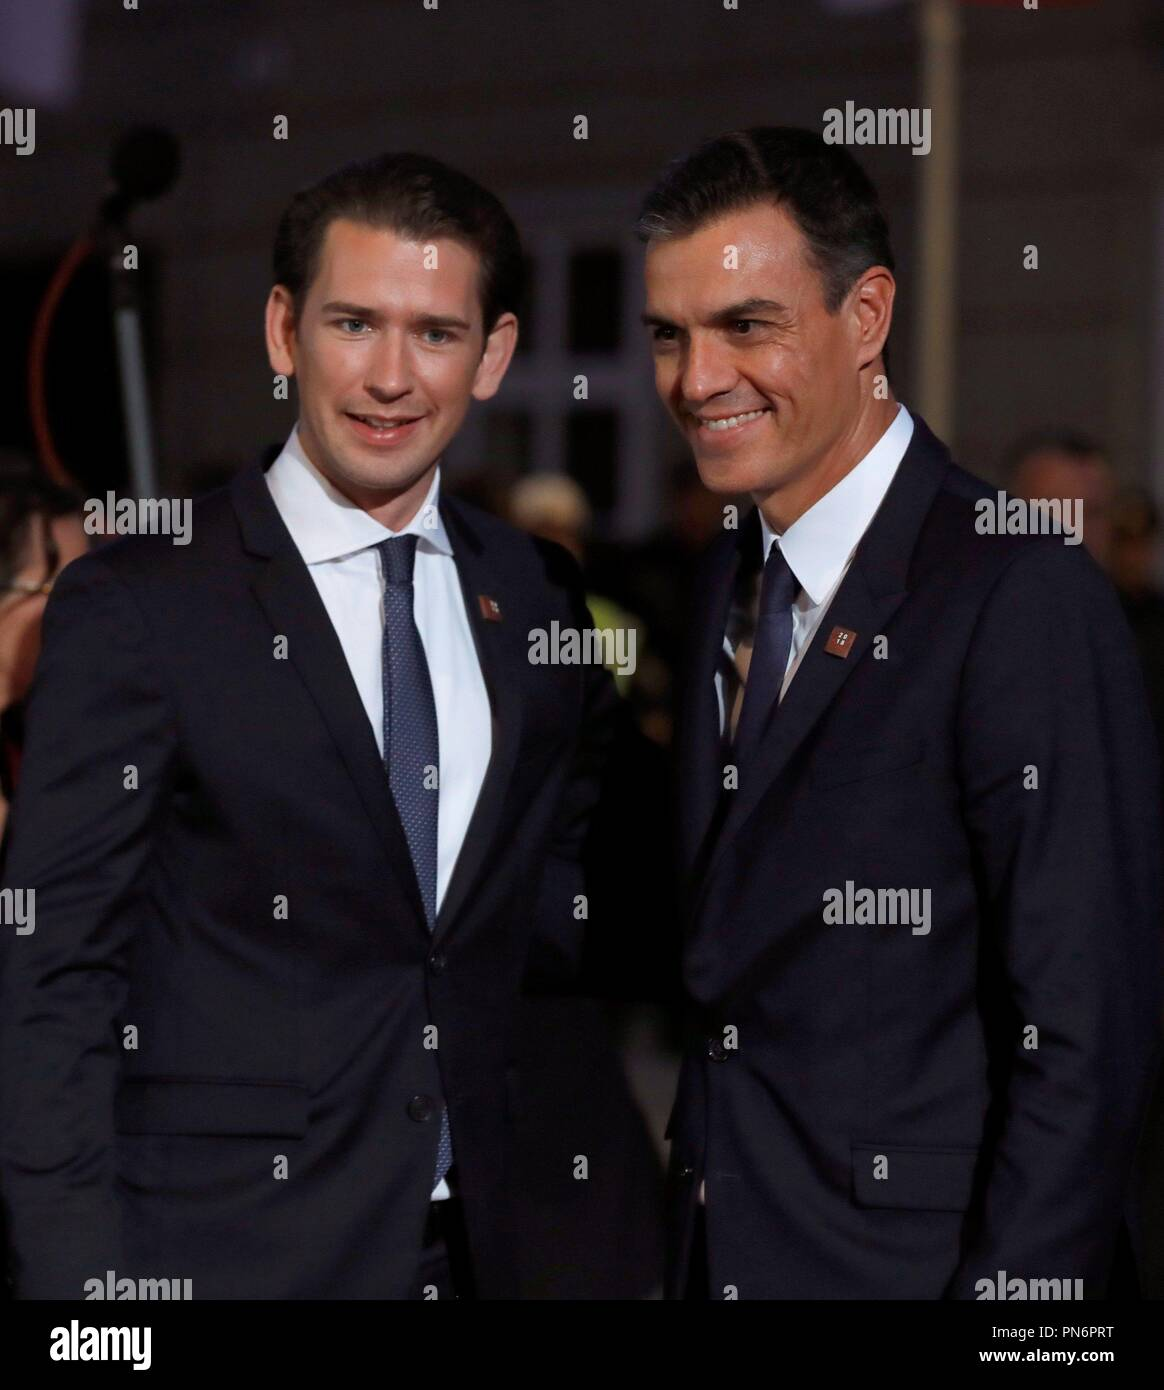 ¿Cuánto mide Pedro Sánchez? - Altura: 1,89 - Real height - Página 4 Salzburg-austria-20th-sep-2018-austrian-chancellor-sebastian-kurz-l-greets-spanish-prime-minister-pedro-sanchez-r-as-he-arrives-for-the-european-unions-eu-informal-heads-of-state-summit-in-salzburg-austria-20-september-2018-eu-countries-leaders-meet-on-19-and-20-september-for-a-summit-to-discuss-internal-security-measures-migration-and-brexit-credit-juanjo-martinefealamy-live-news-PN6PRT